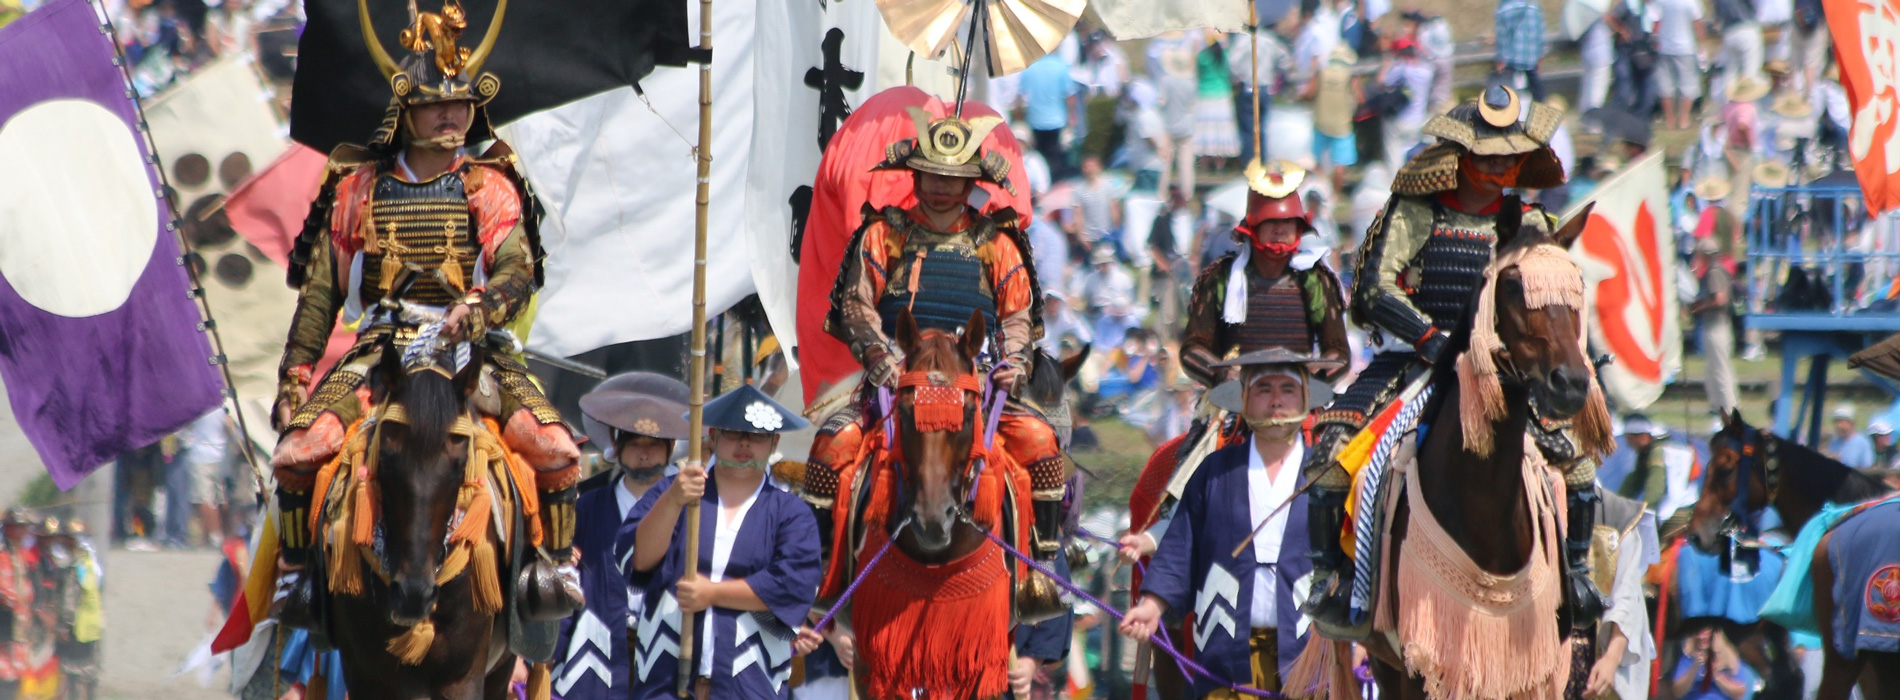 Summer Festivals in Fukushima 2019